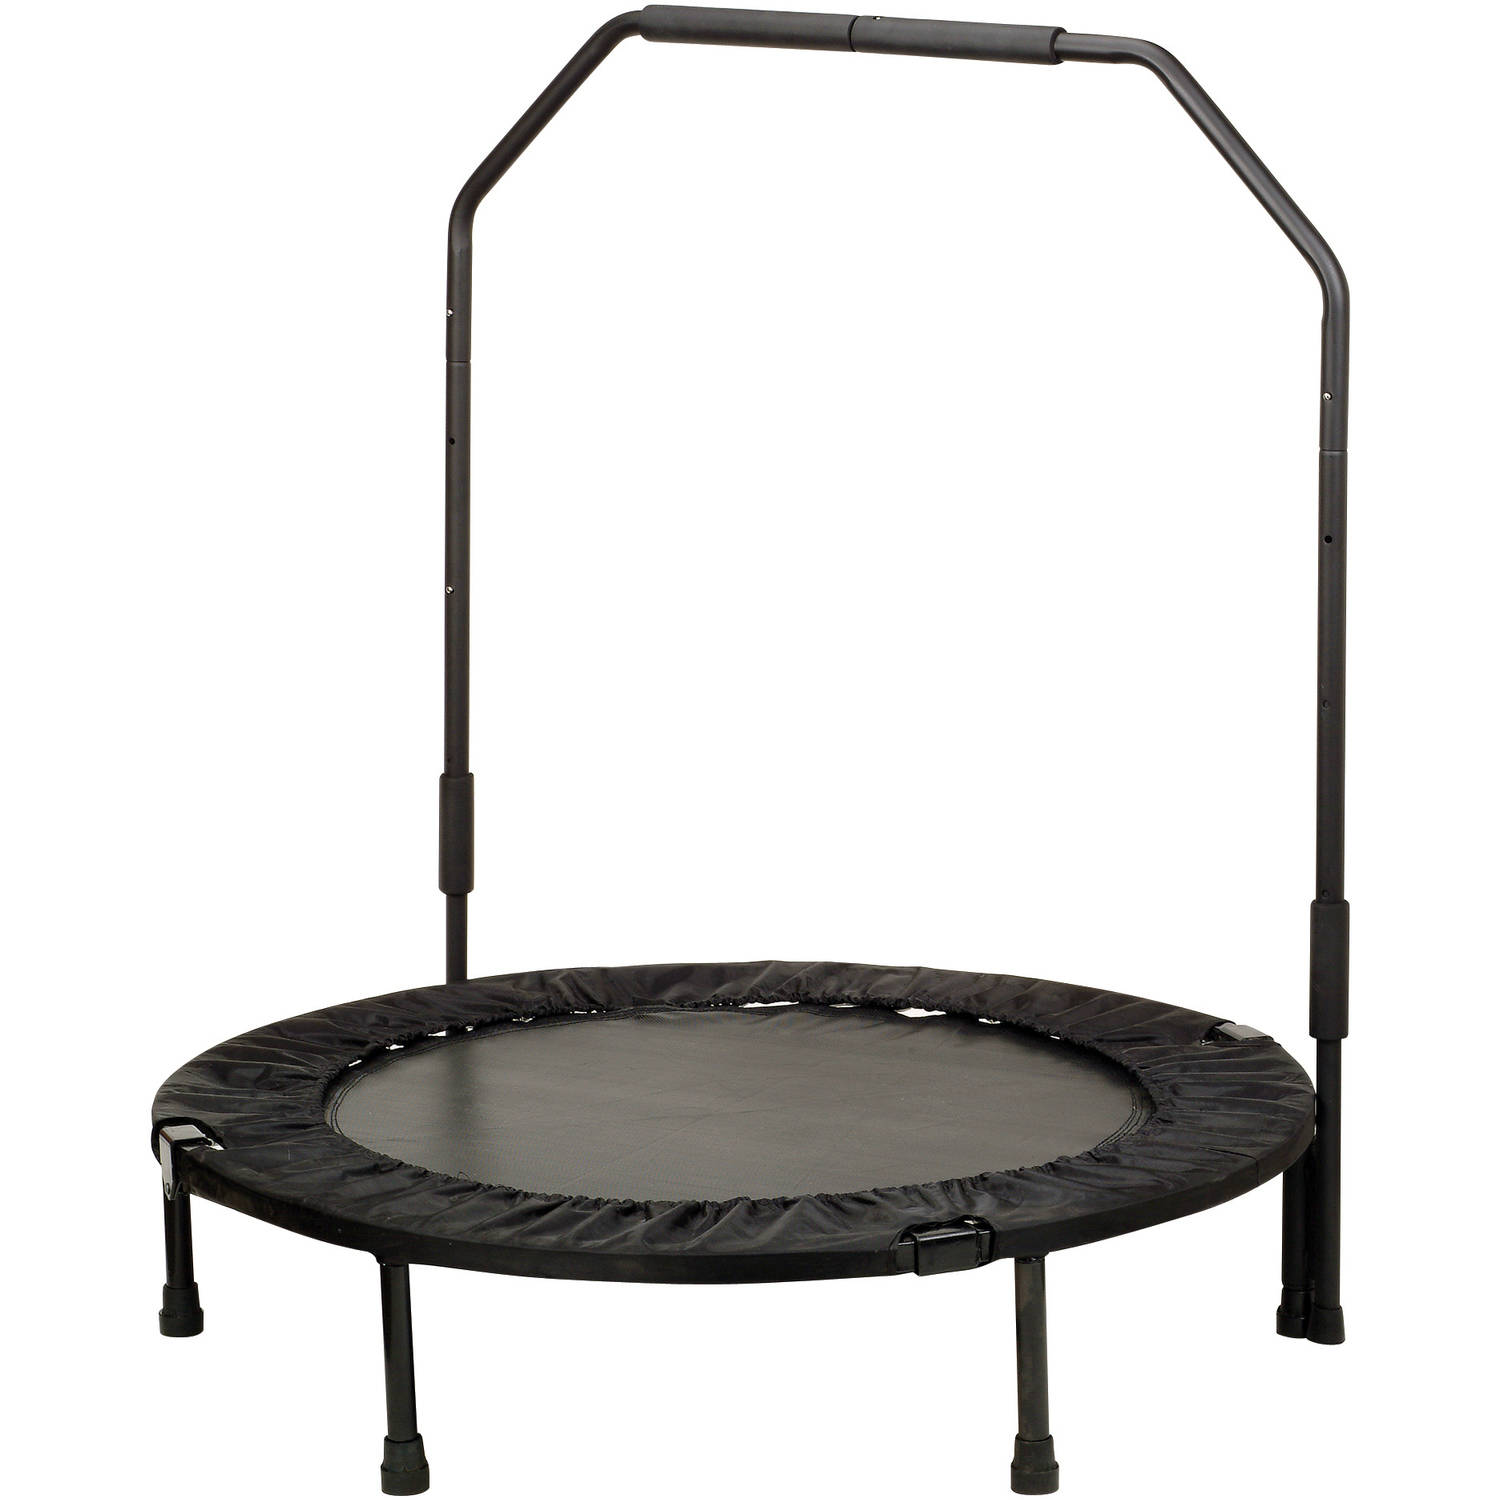 Sunny Health & Fitness 40'' Foldable Trampoline with Stabilizing Bar